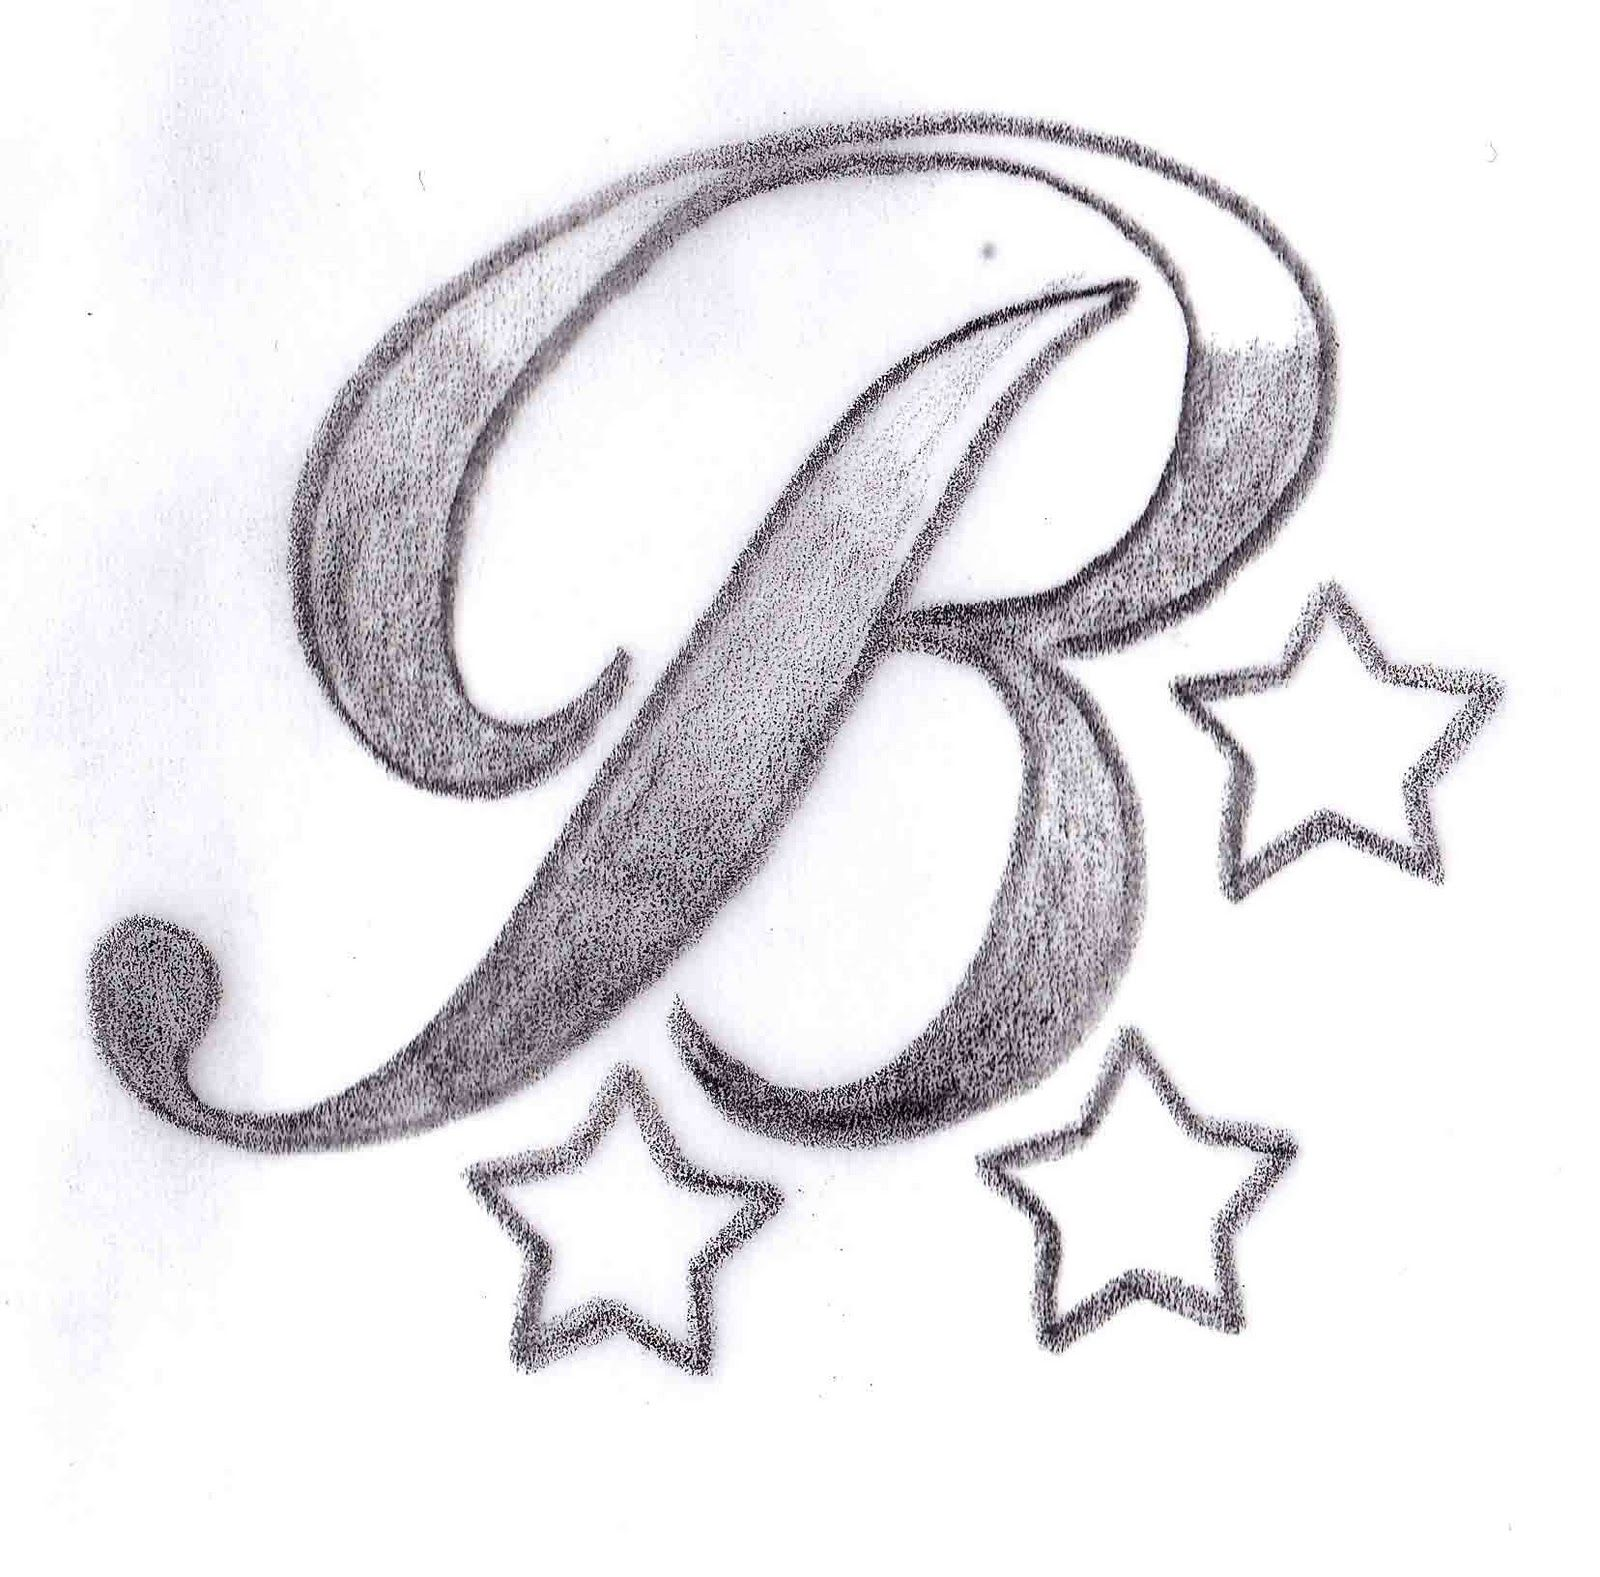 Tattoo Designs Letter B: Pin By Tommy Brooks On Lots Of Cool Ideas